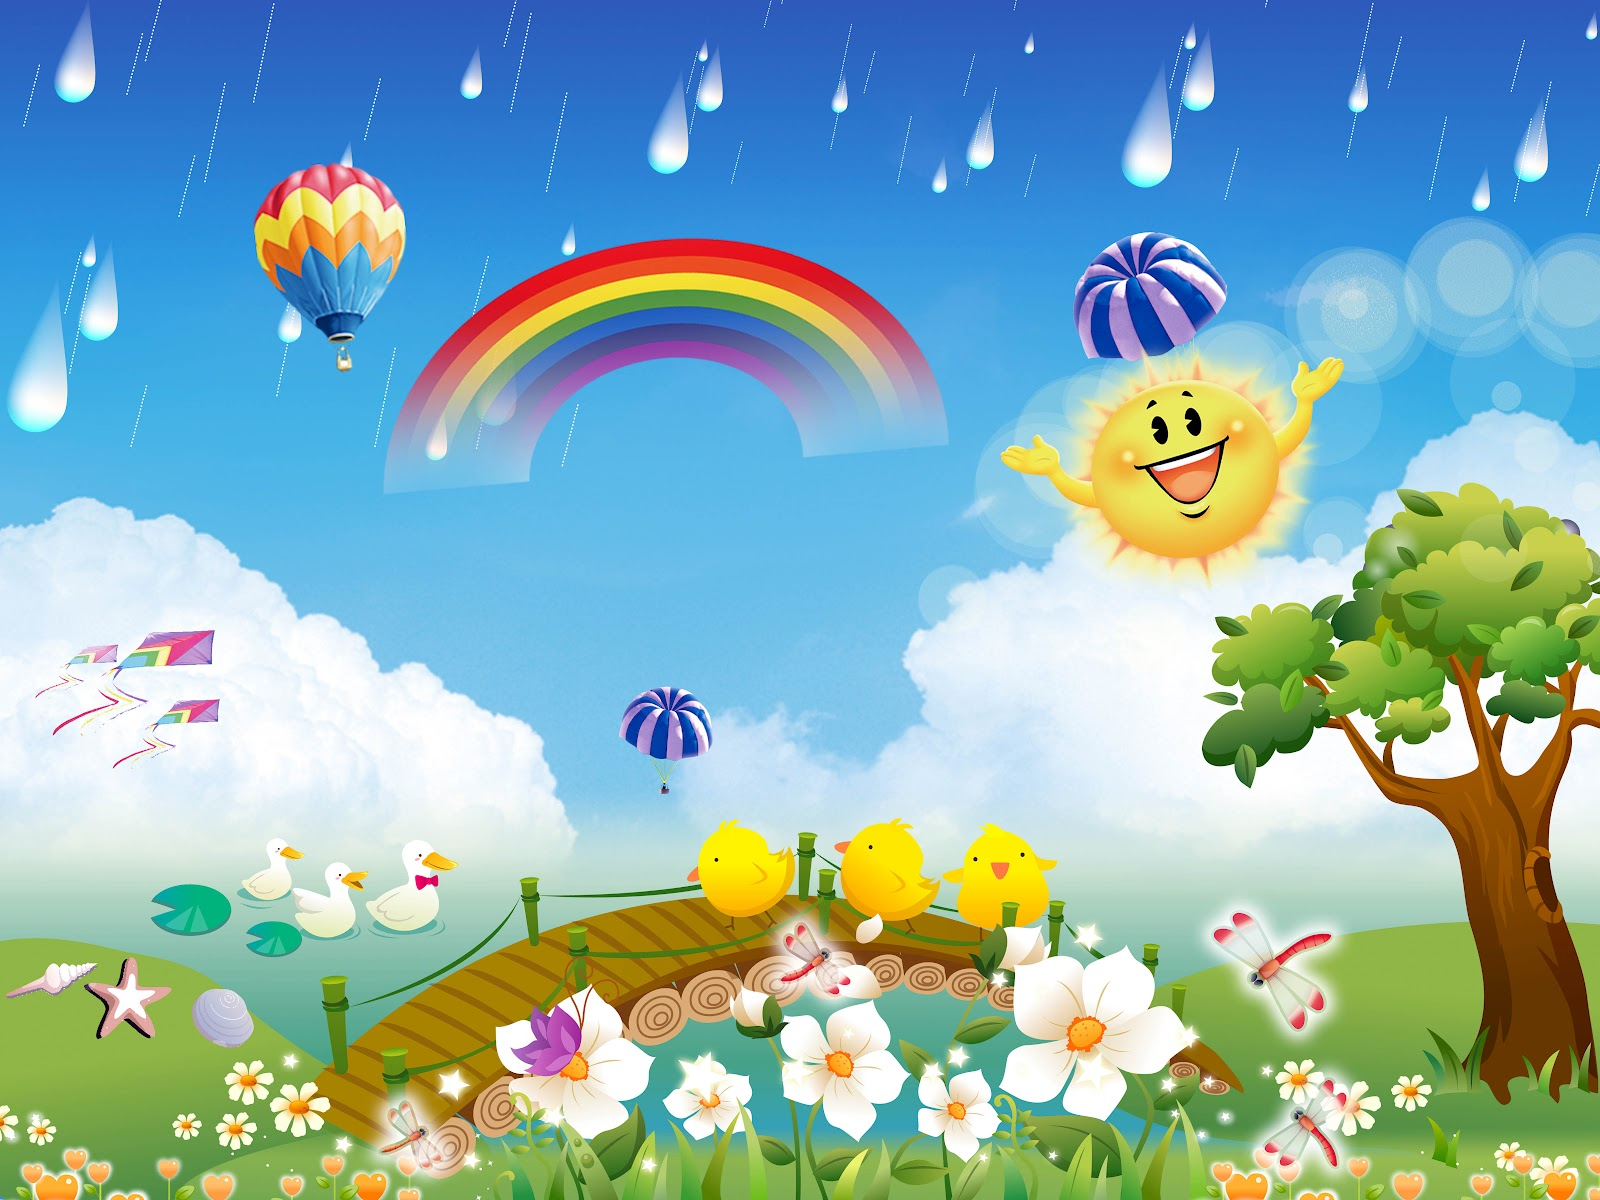 Wallpaper for kids wallpapersafari - Decorar marcos de fotos infantiles ...